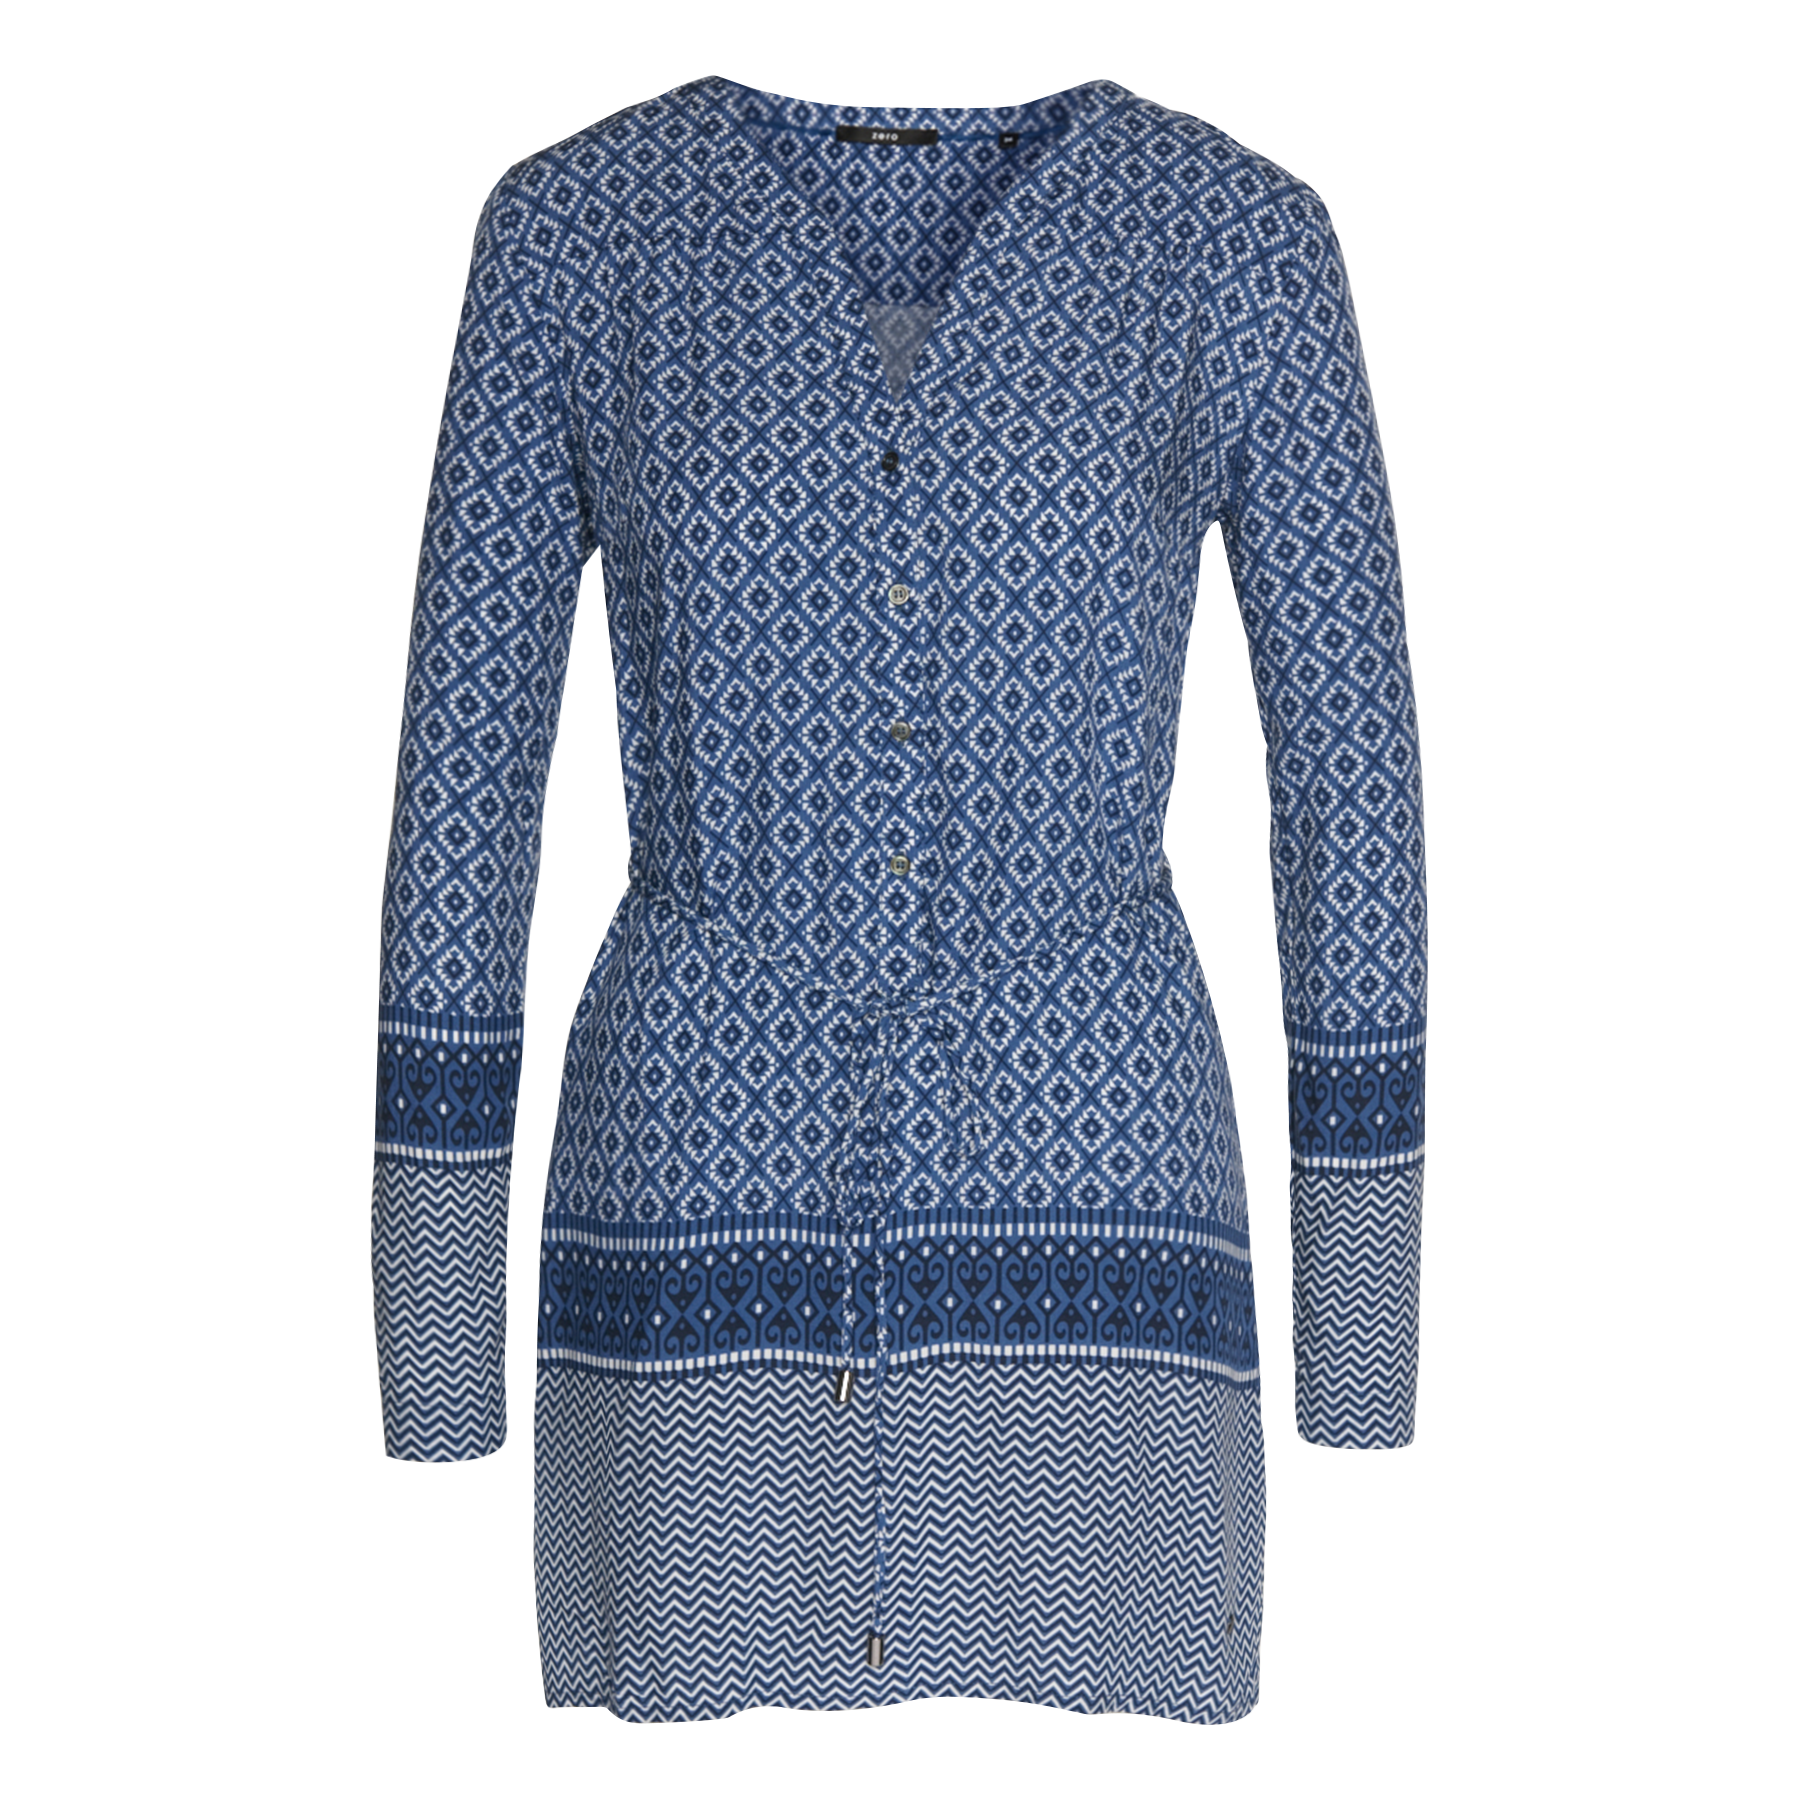 Bluse mit Allover-Muster blue shadow